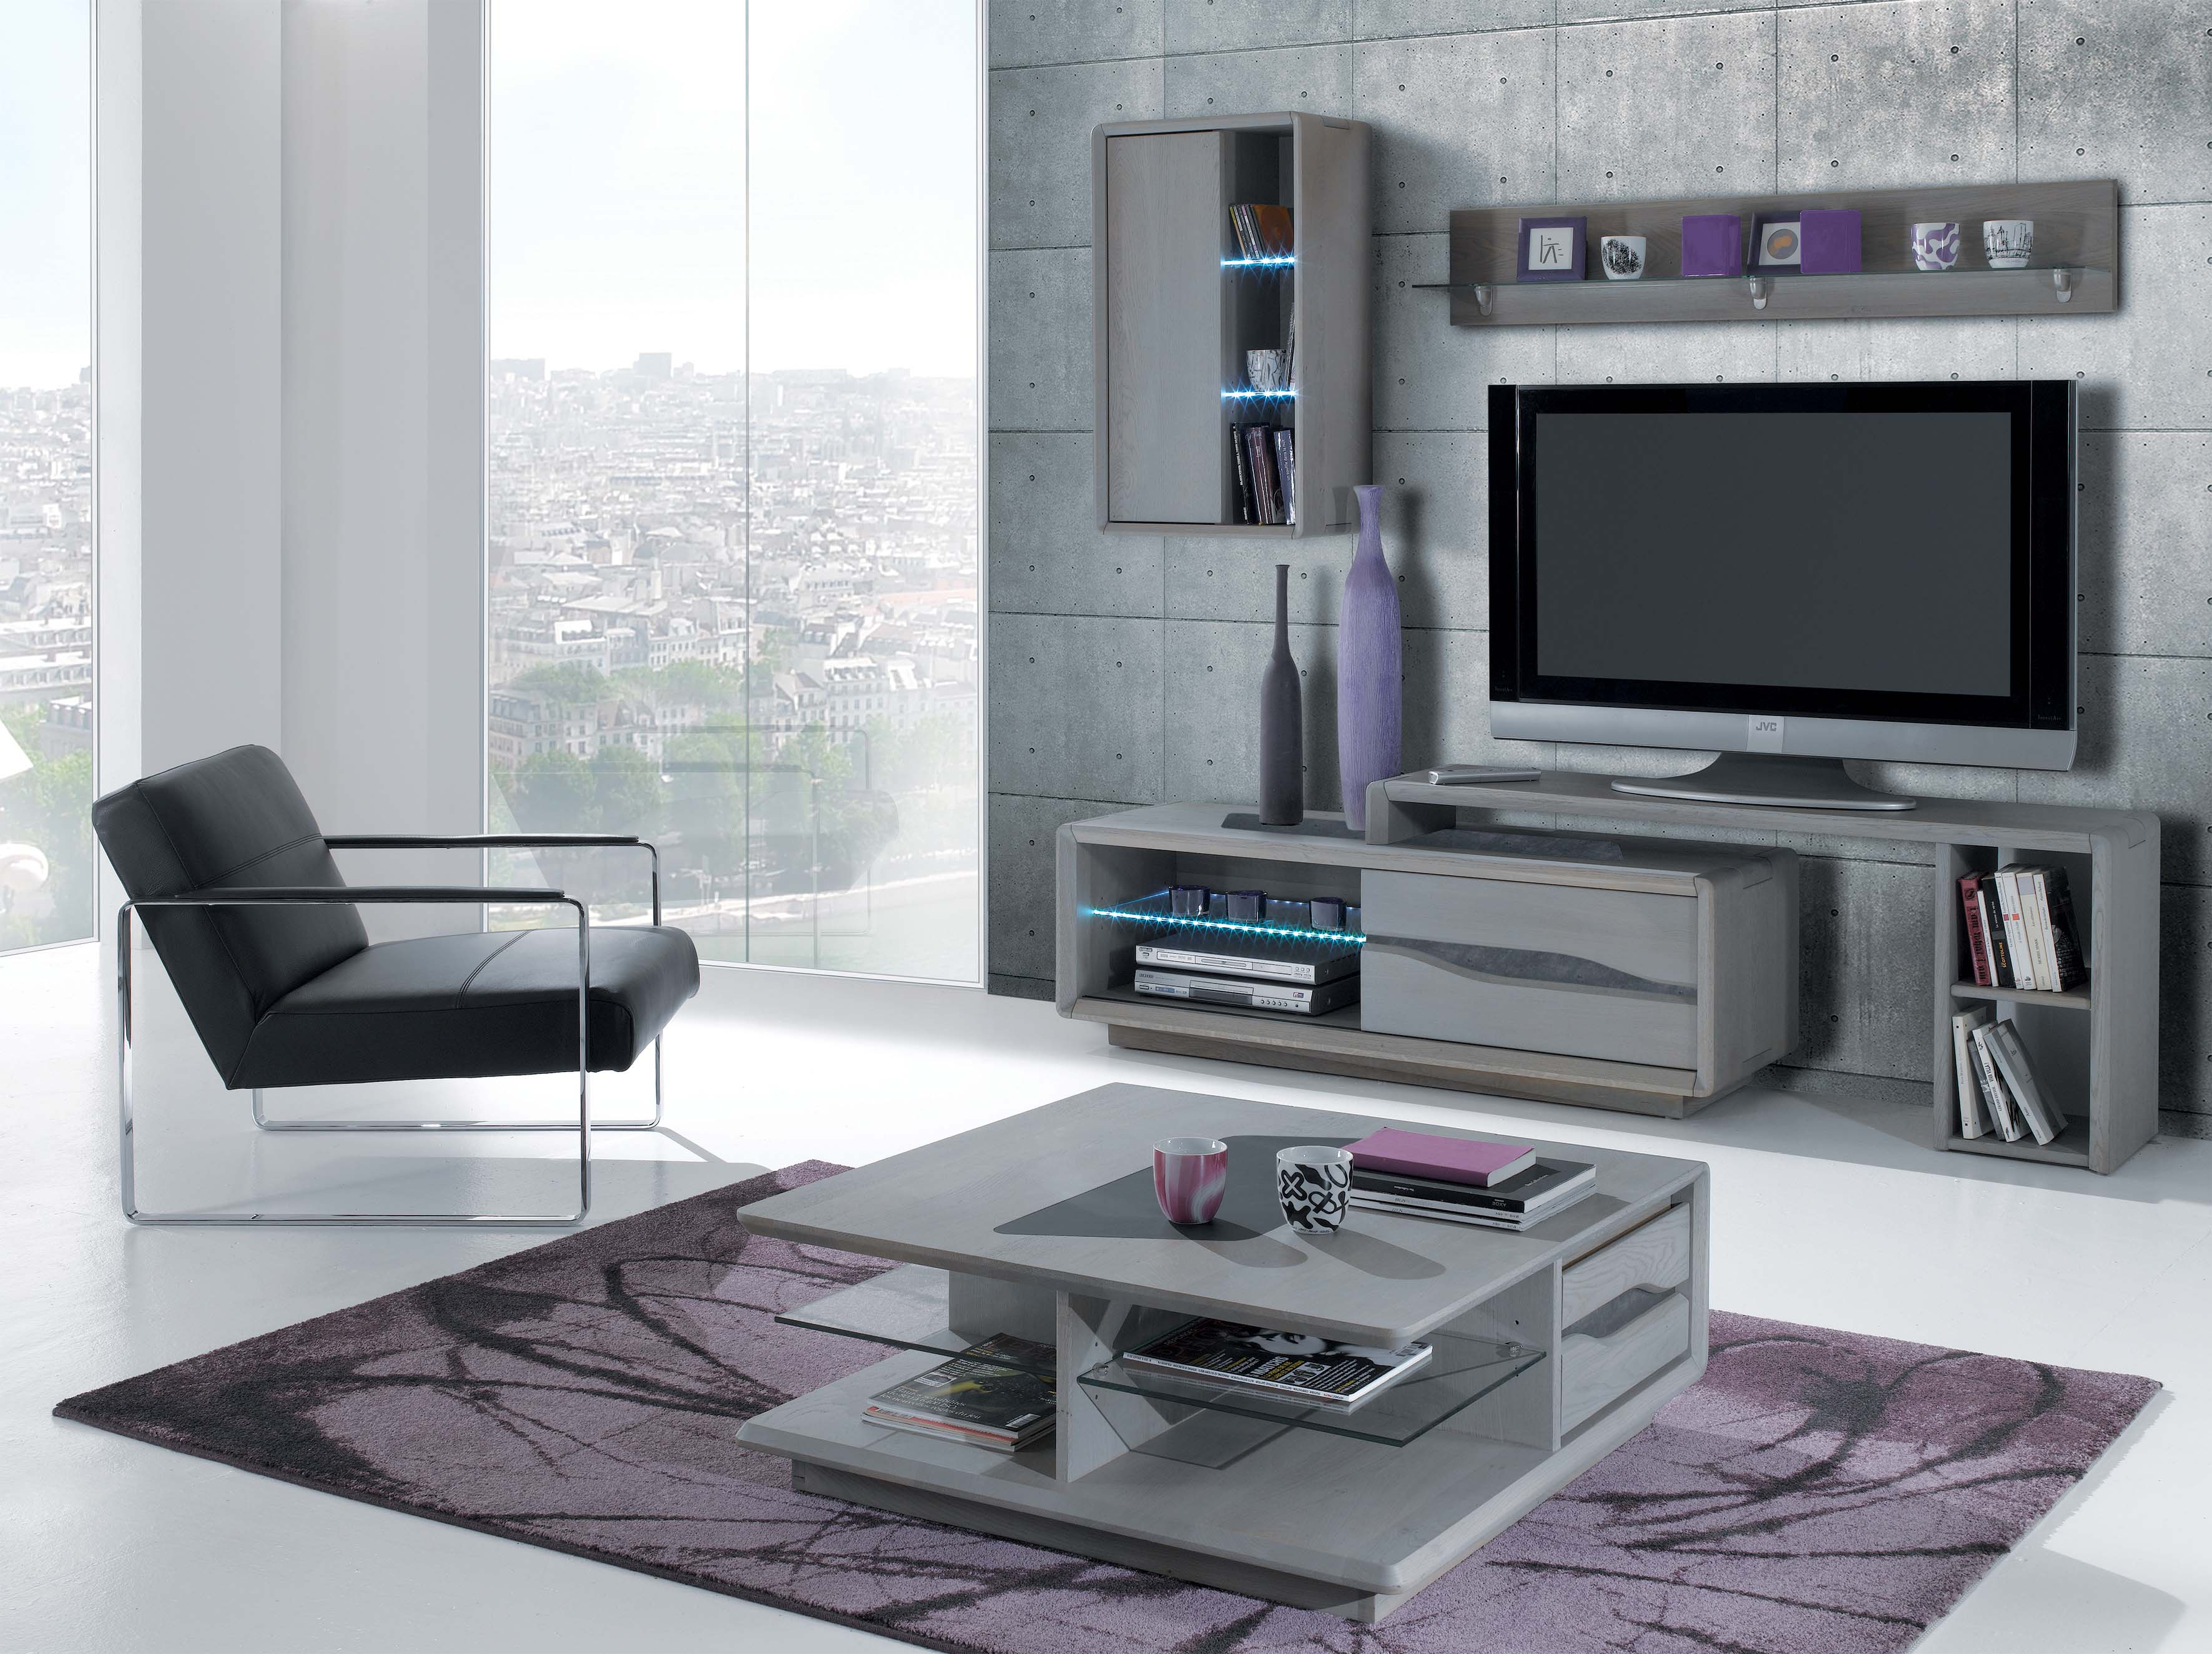 Meuble Tv Design Contemporain Ce810gm # Meuble Tv Violet